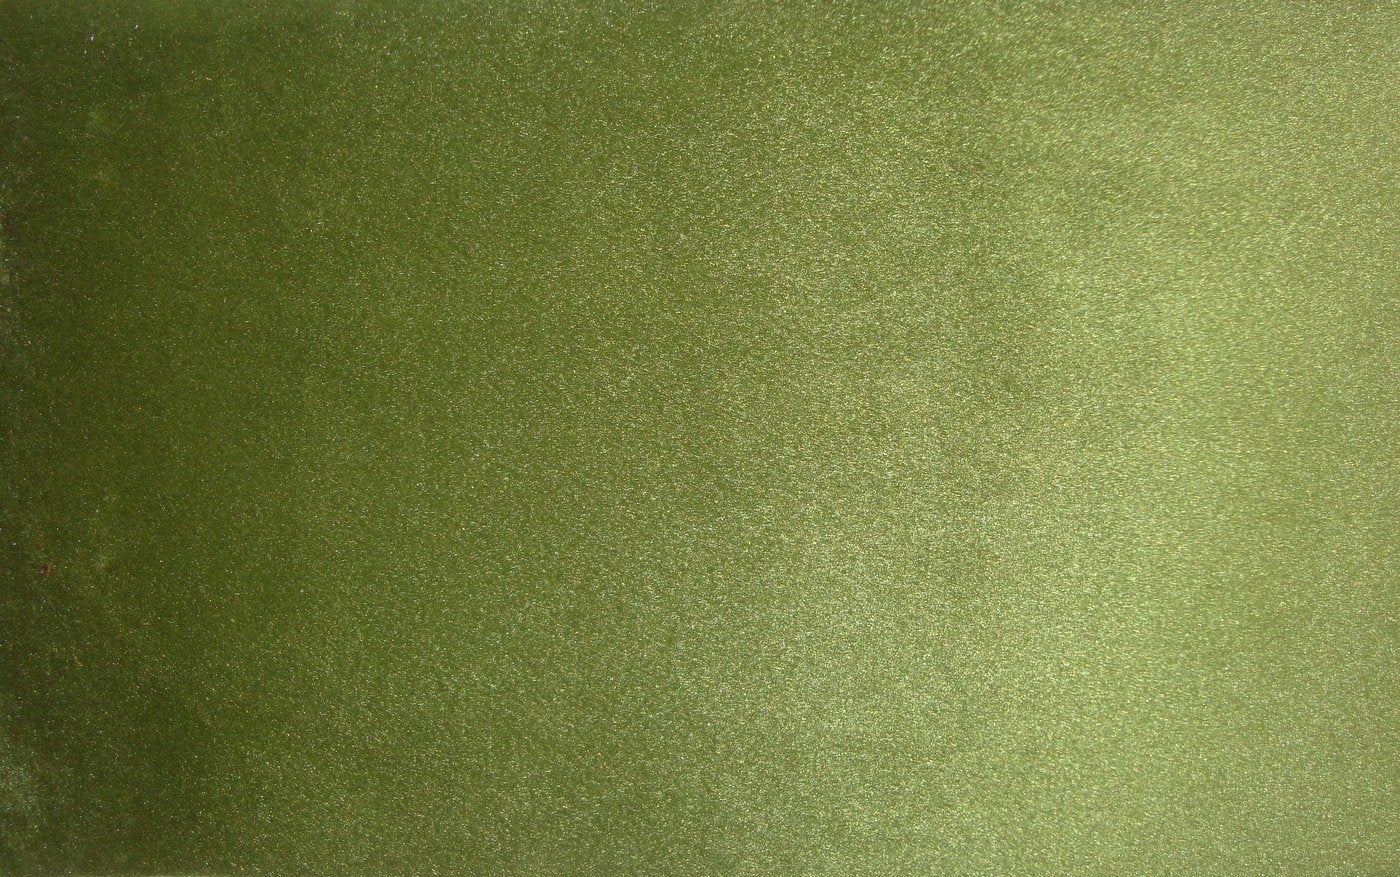 "Apple Green Velboa Faux Fur Upholstery Fabric 60"" Wide 